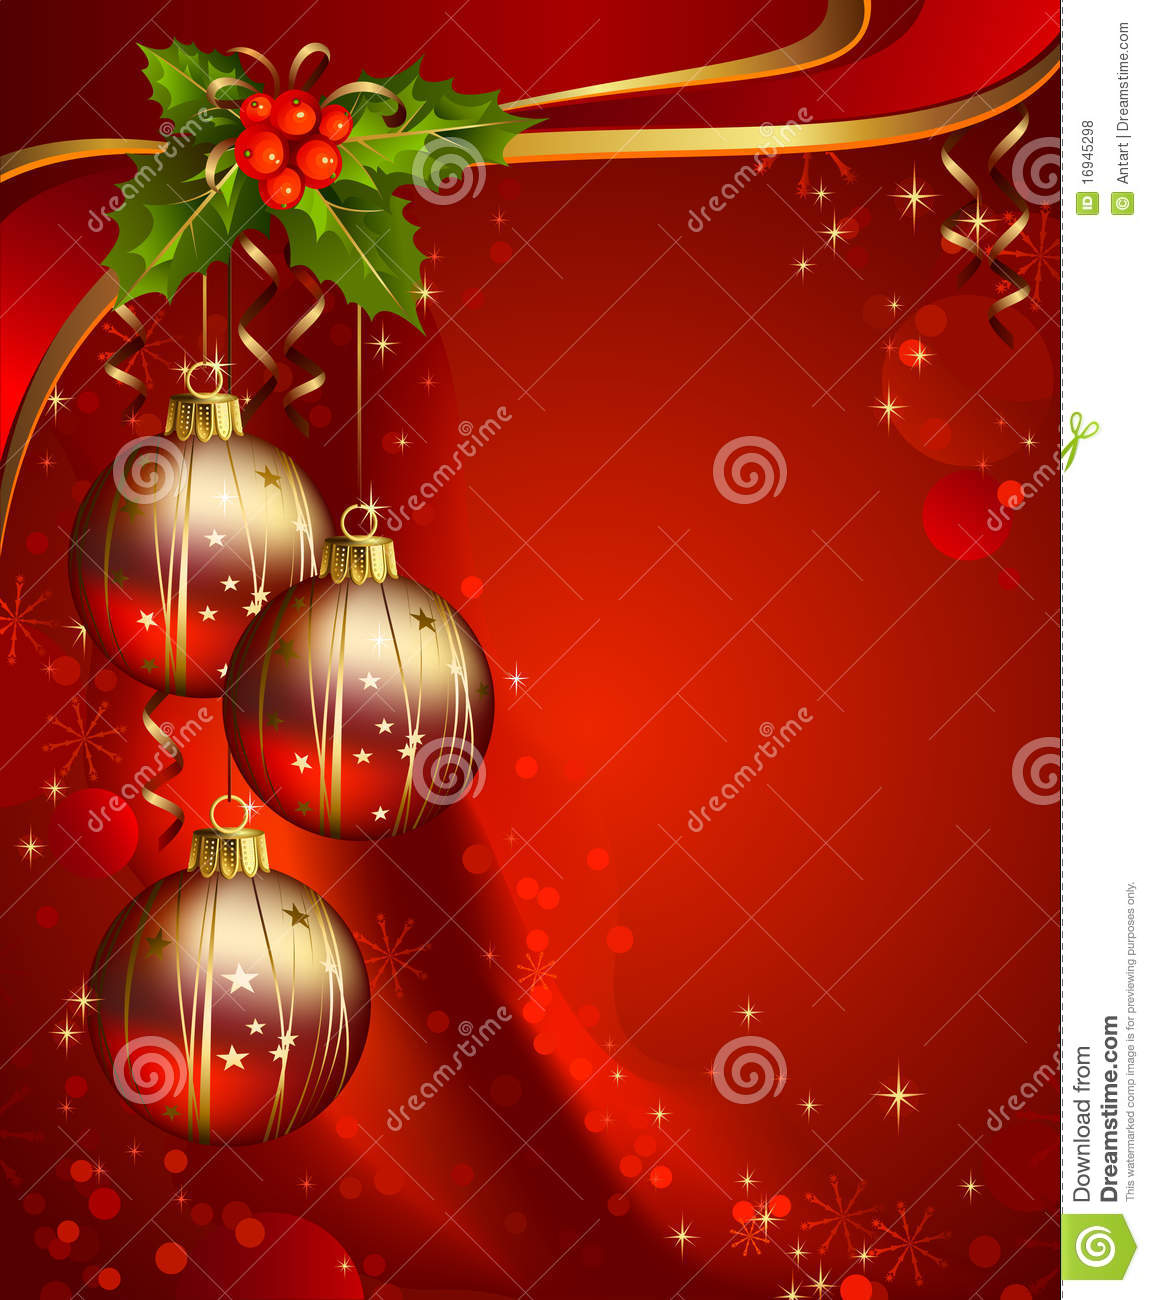 Vertical Red Christmas Backdrop Royalty Free Stock Photos ...